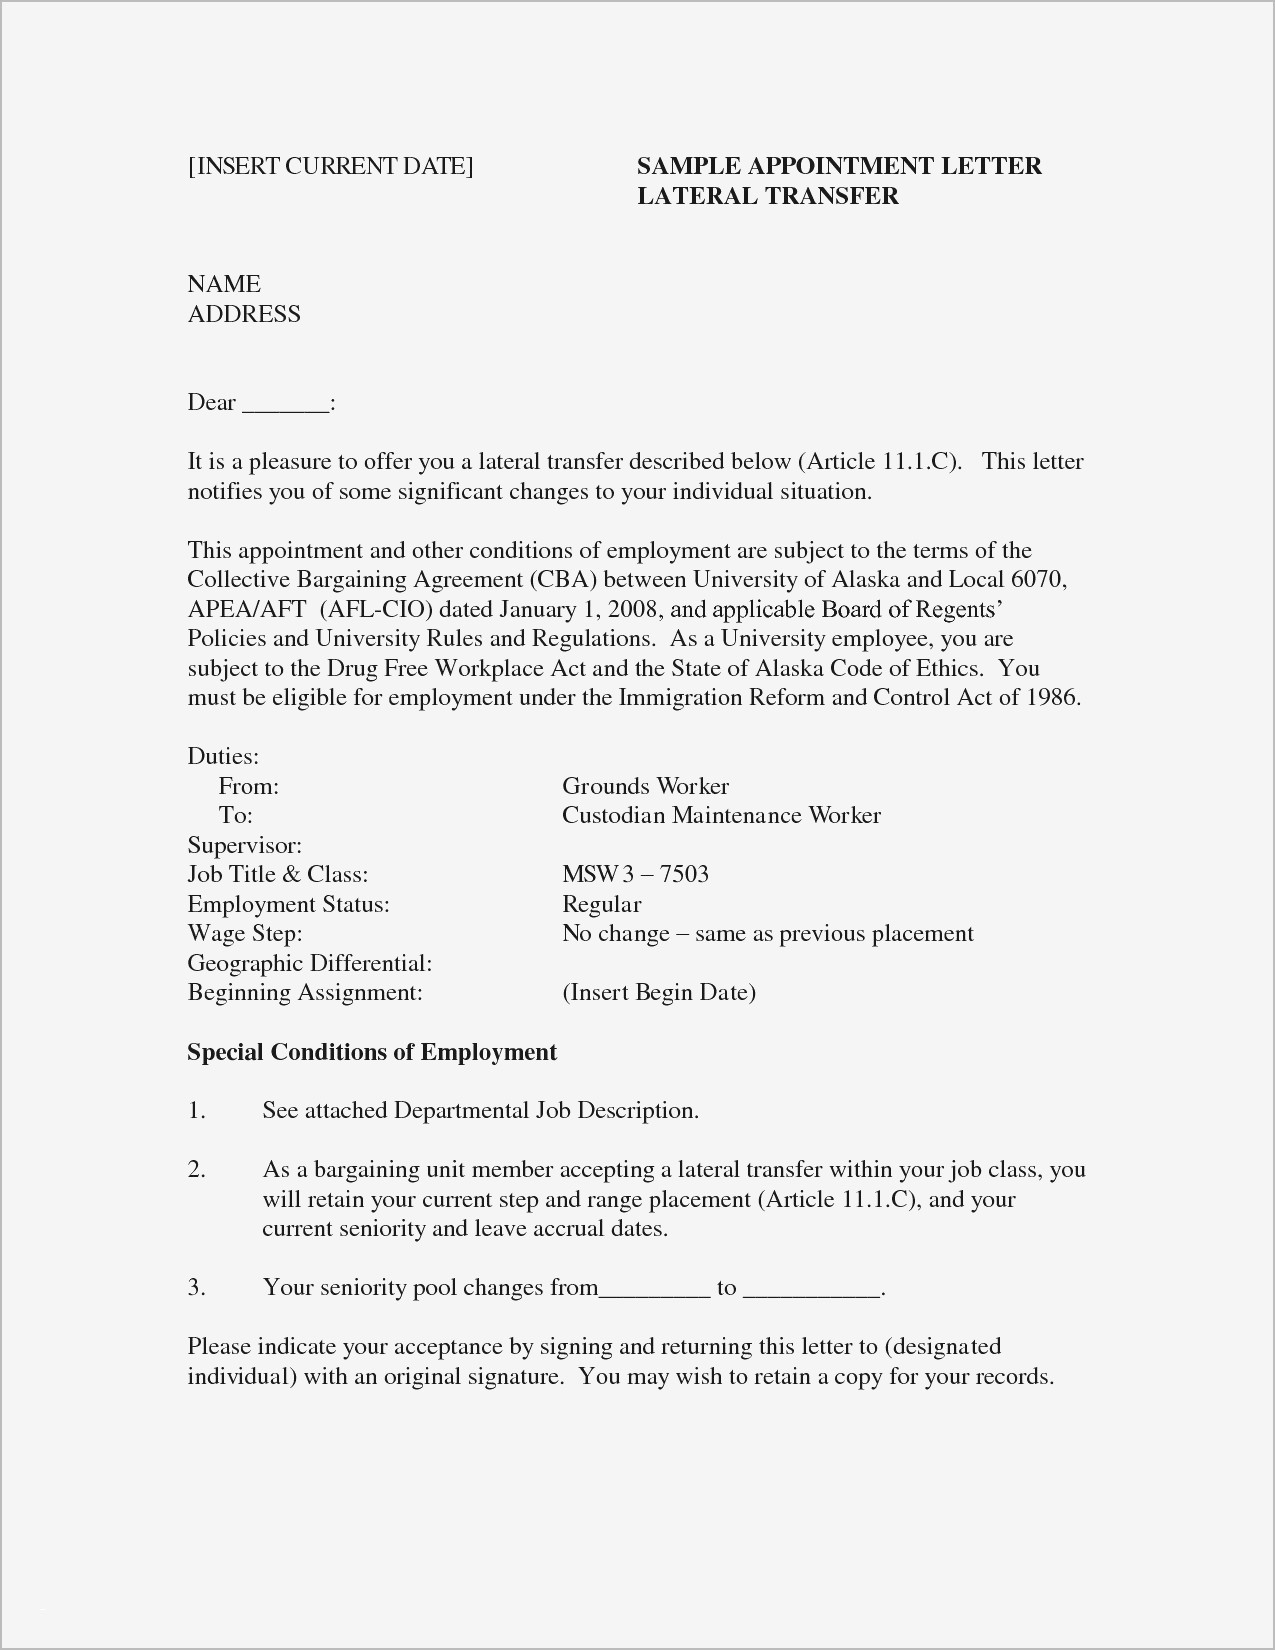 lead mechanic resume Collection-Mechanical Technician Resume Lovely New Tech Resume Best Great Resume Examples Awesome Fresh Resume 0d 18-i